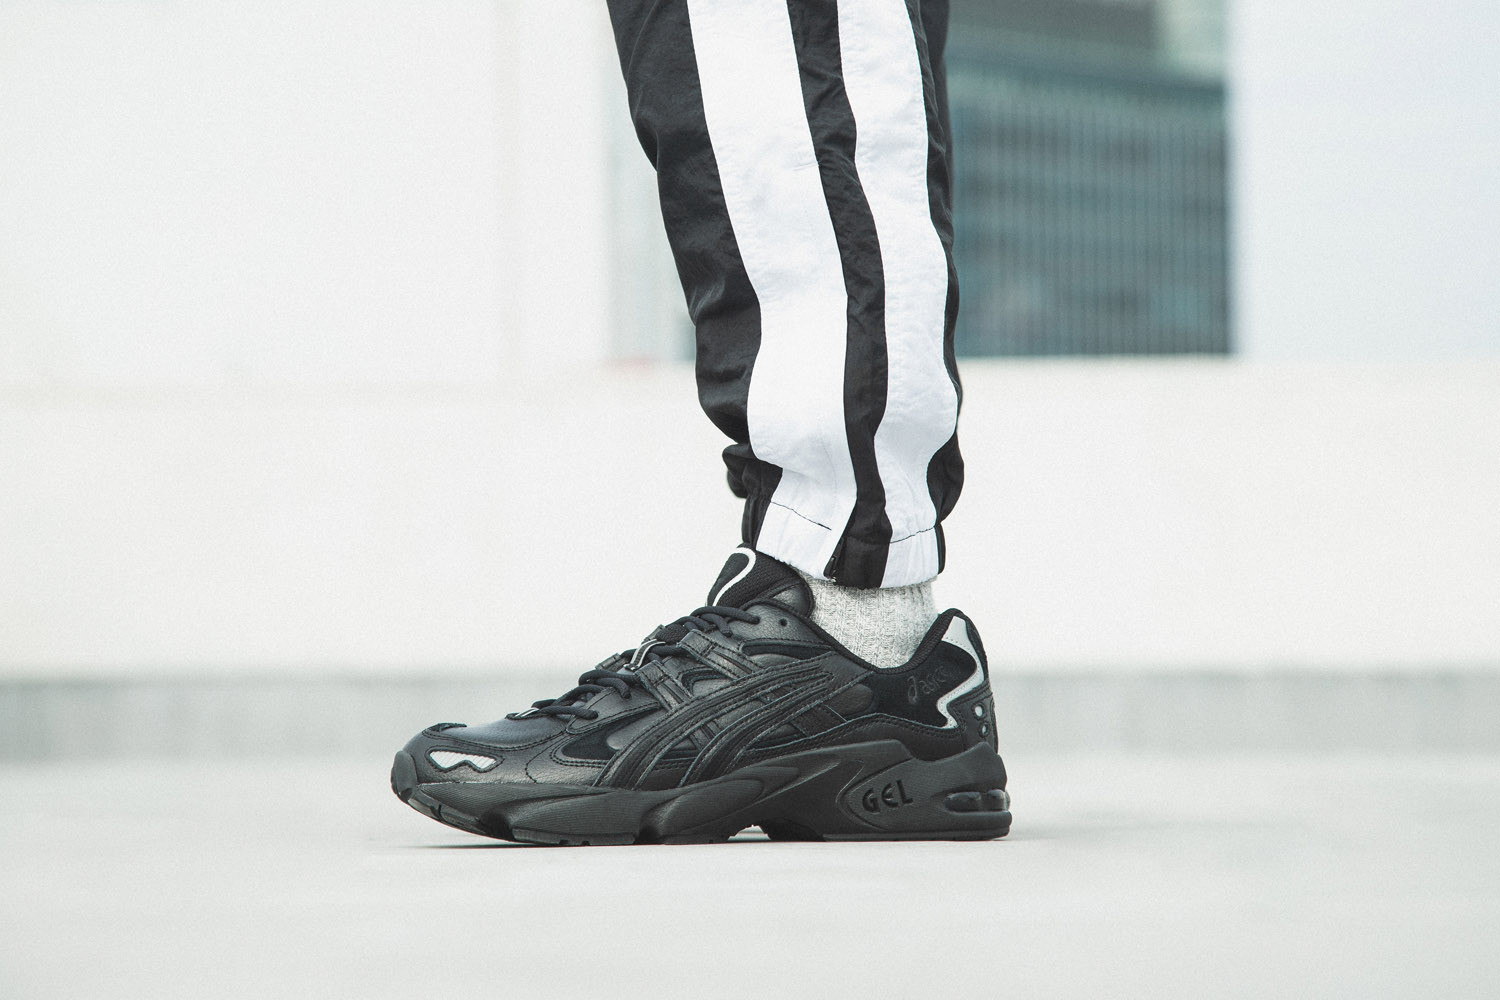 021cde0a6c7fd8 New Arrivals: ASICS GEL-Kayano 5 OG | HBX Journal